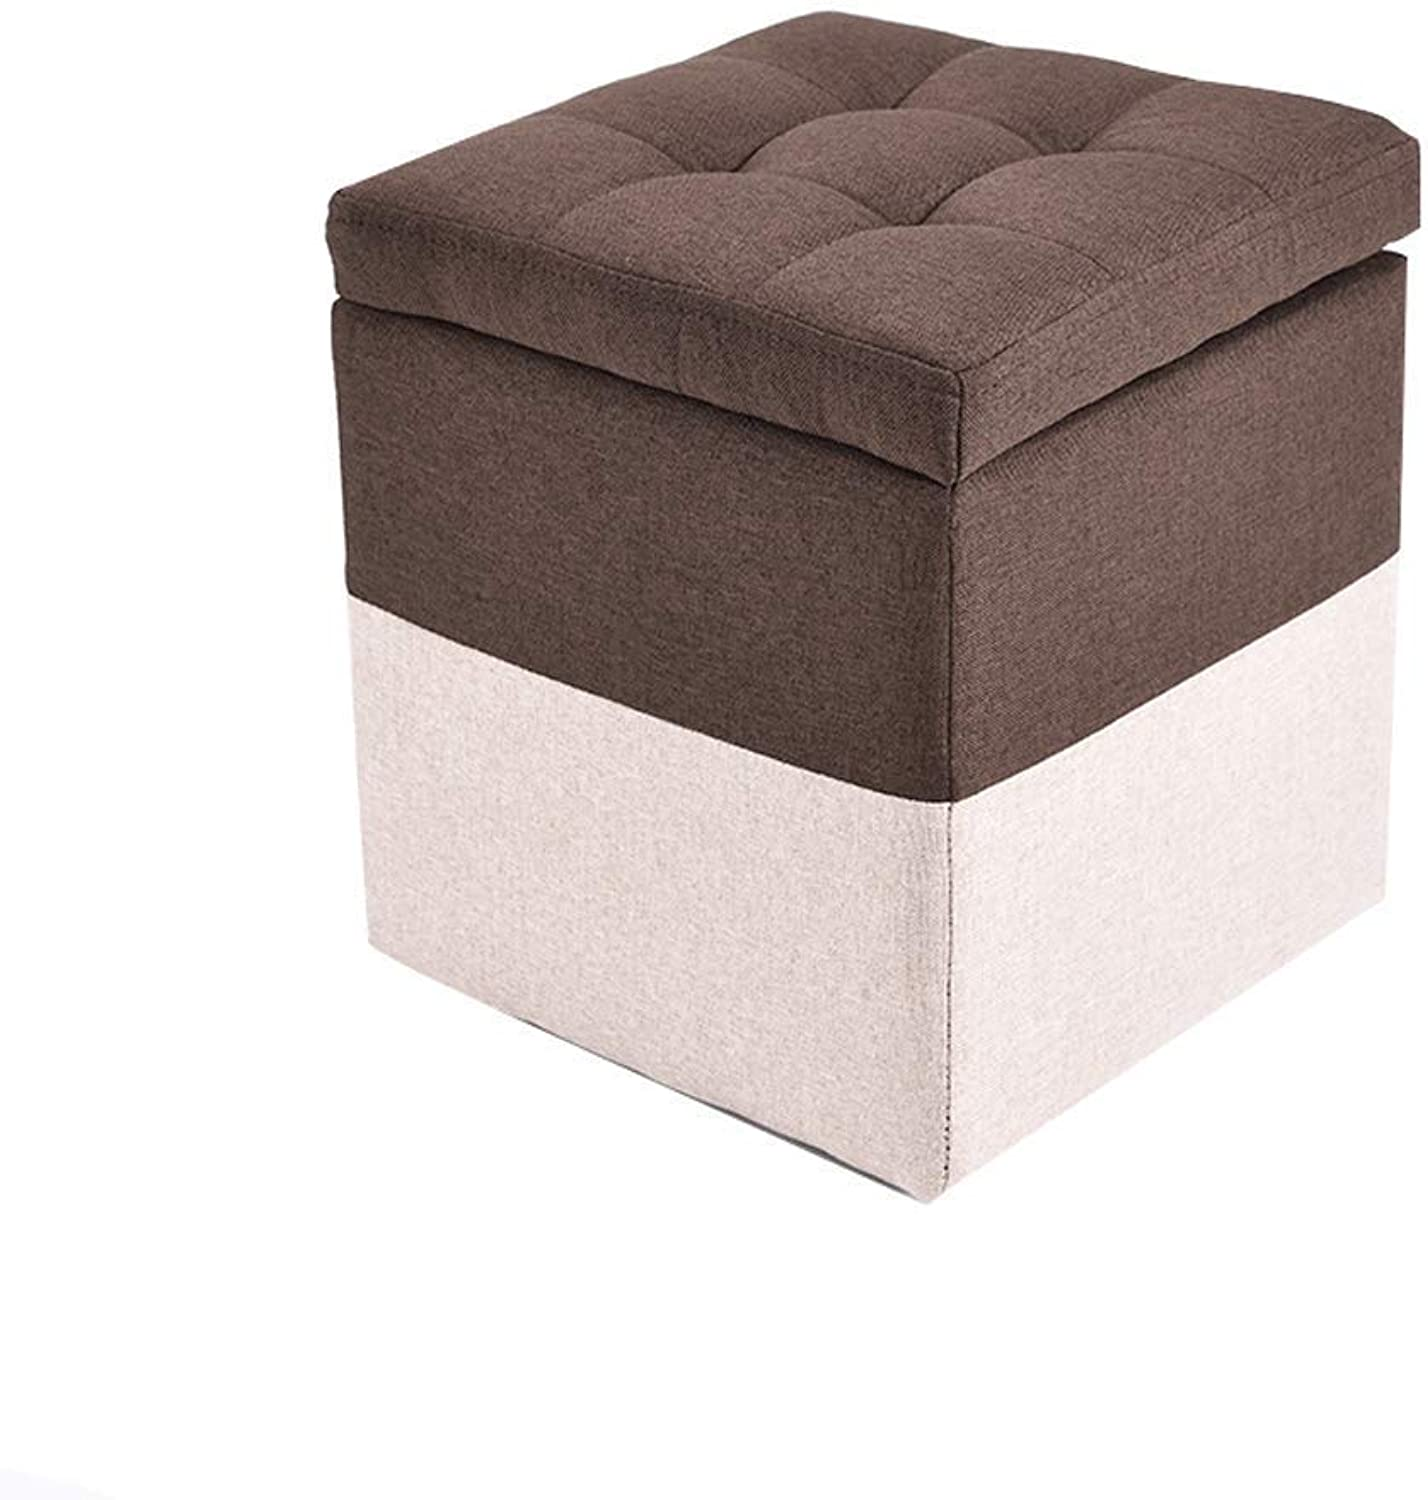 Footstool Change shoes Bench Storage Stool Household Cloth Stool 30X30X30CM Sofa Stool Living Room Haiming (color   C, Size   30X30X35CM)